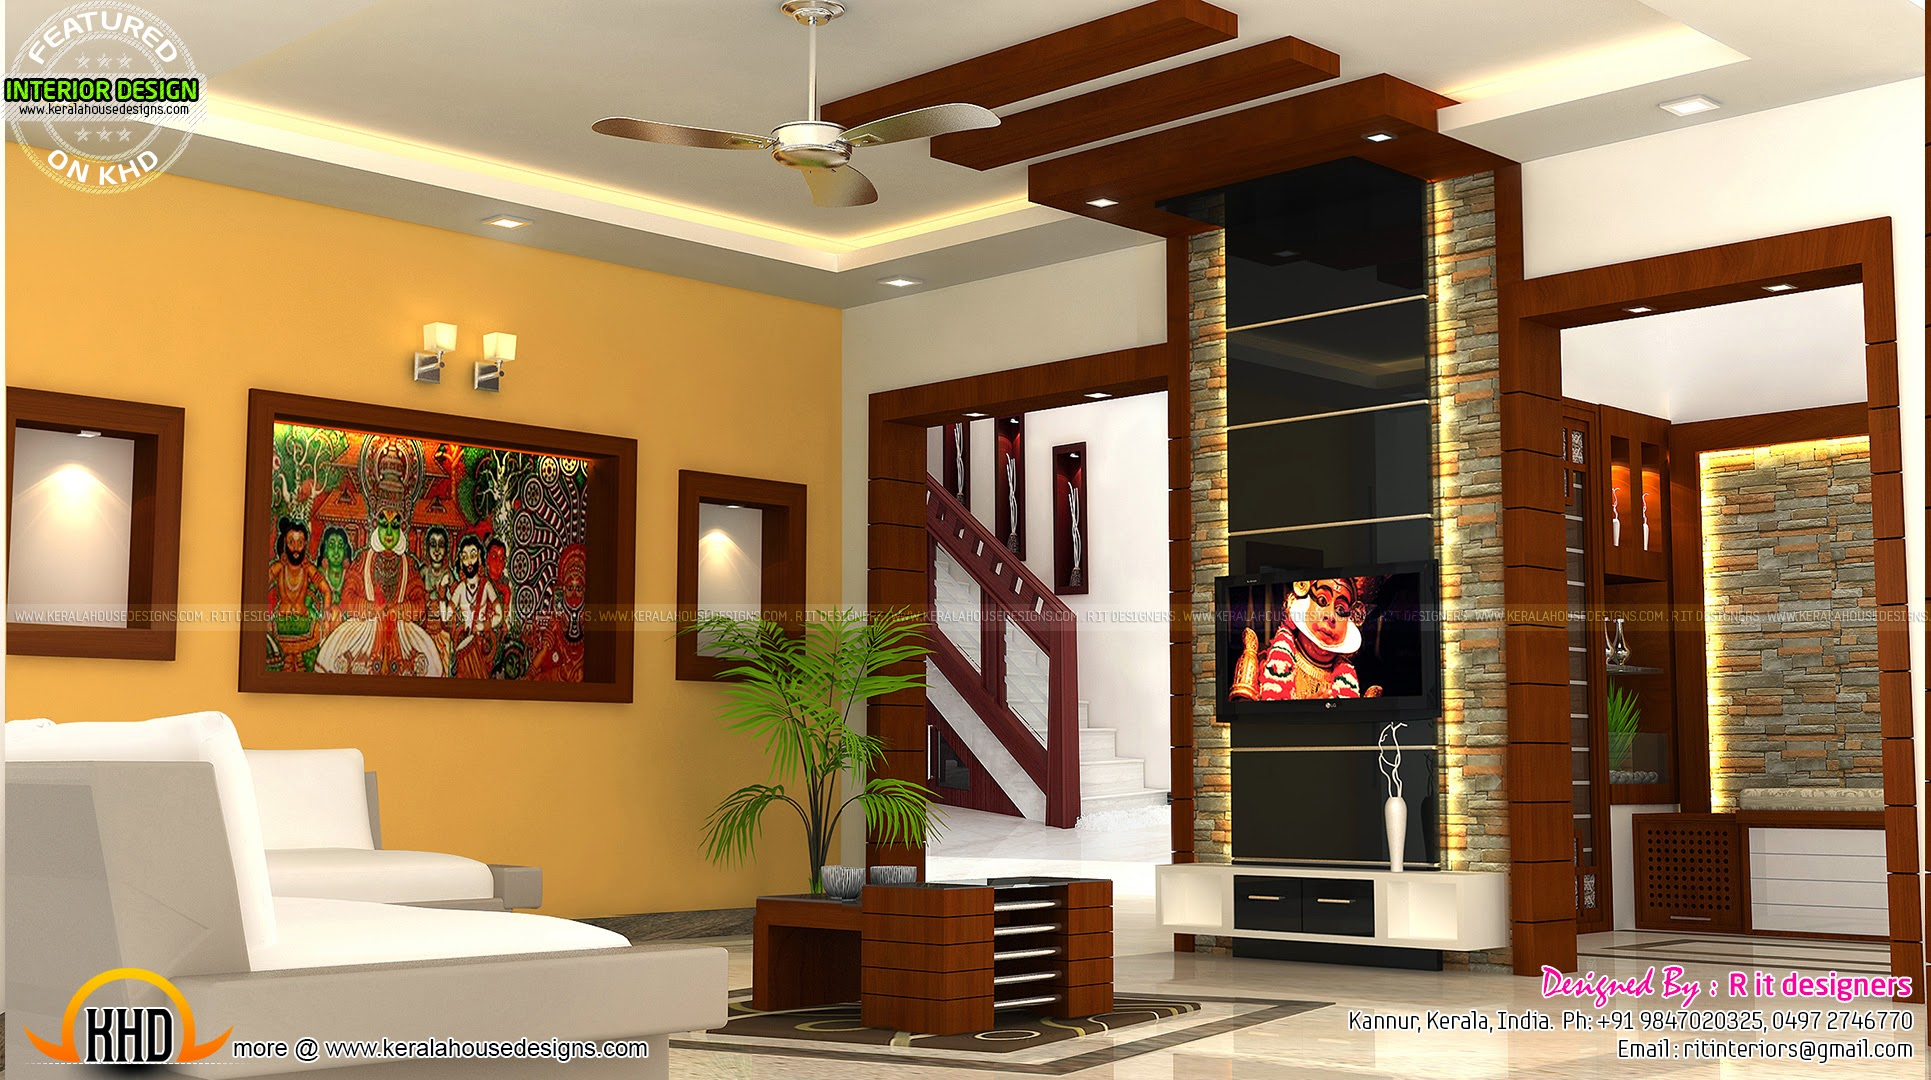 Kerala interior design with cost kerala home design and for Interior designs houses pictures